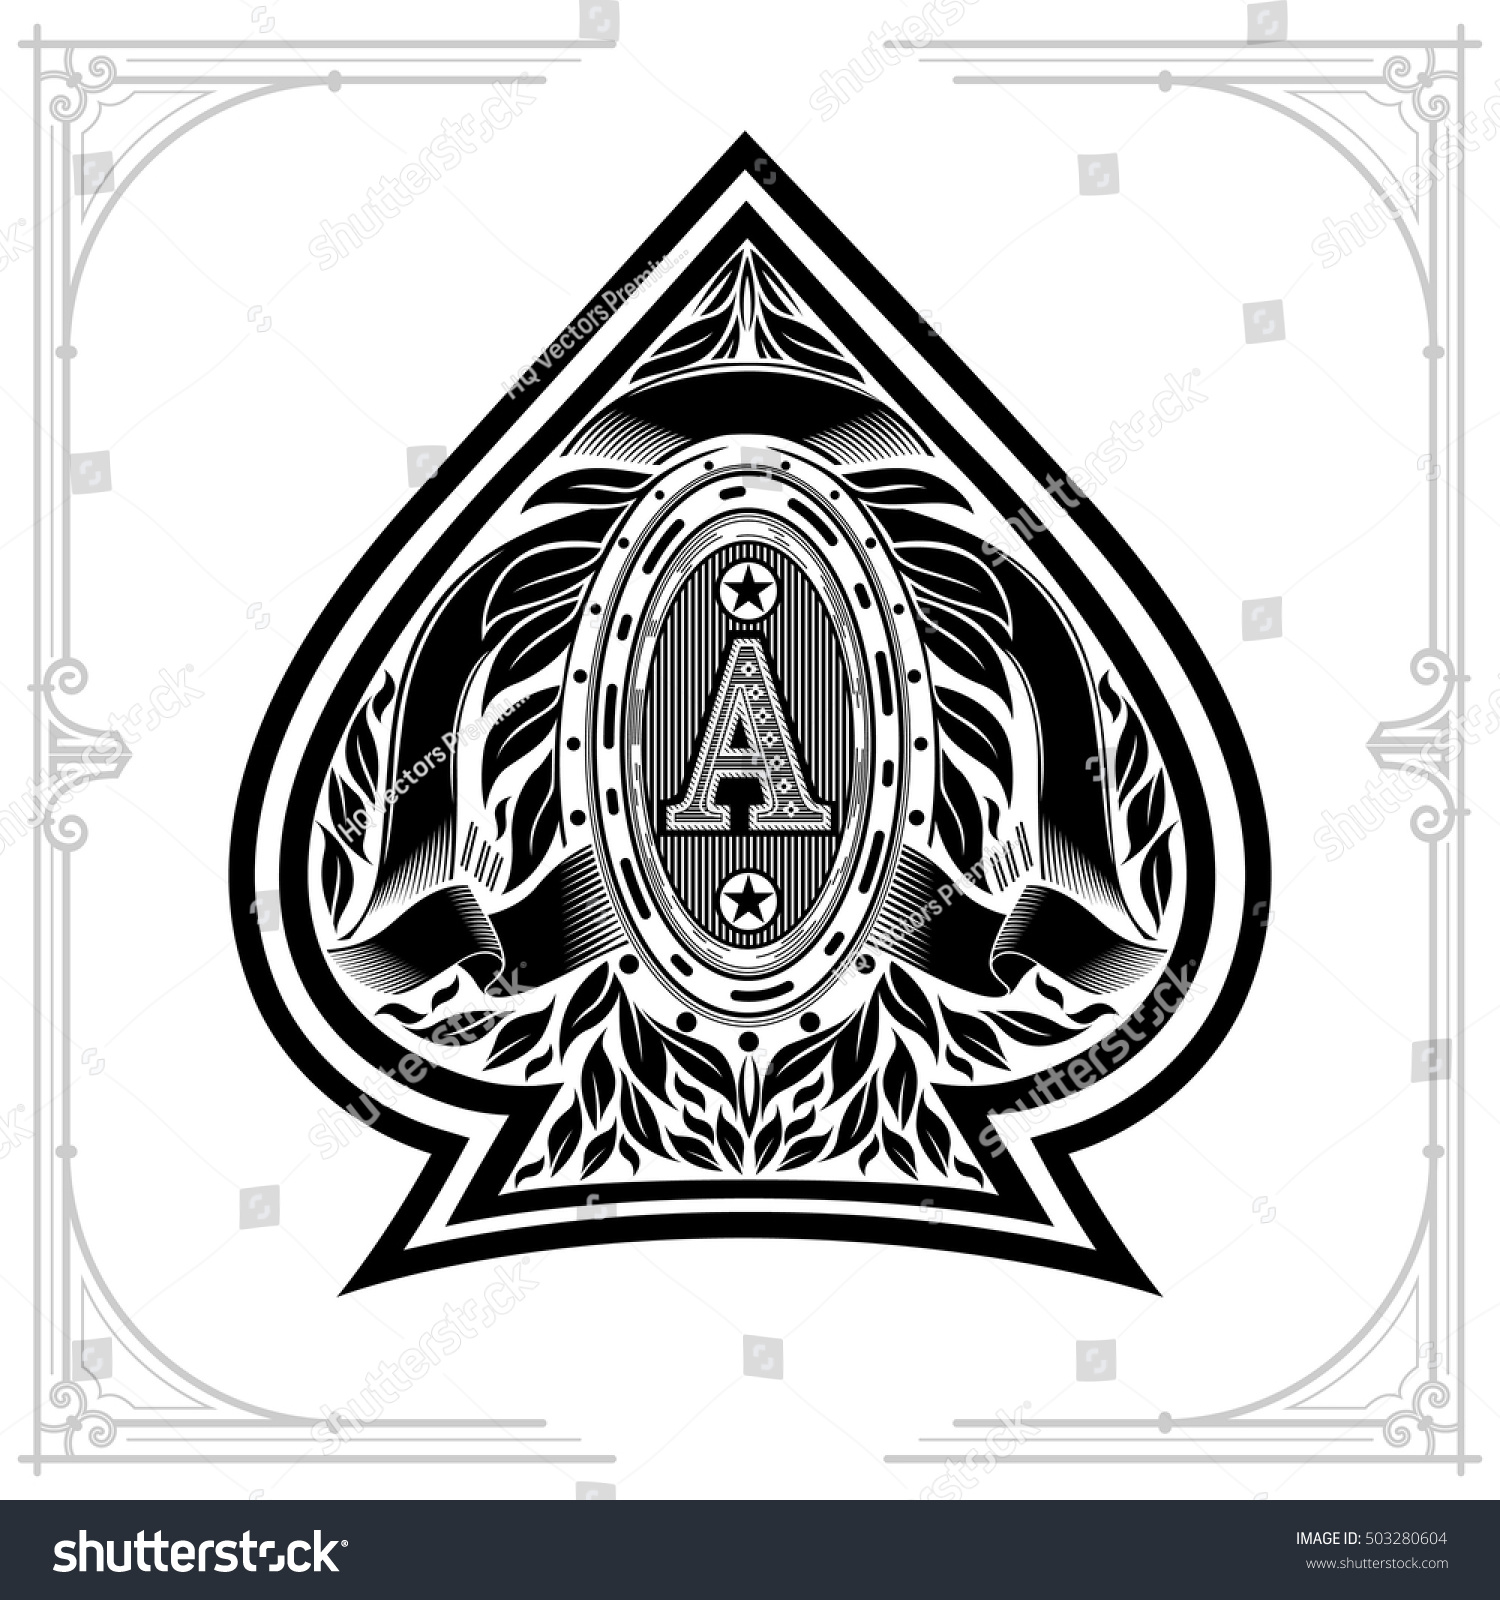 Ace spades form oval frame between stock vector 503280604 shutterstock ace of spades form with oval frame between laurel wreath and ribbon inside design playing biocorpaavc Choice Image